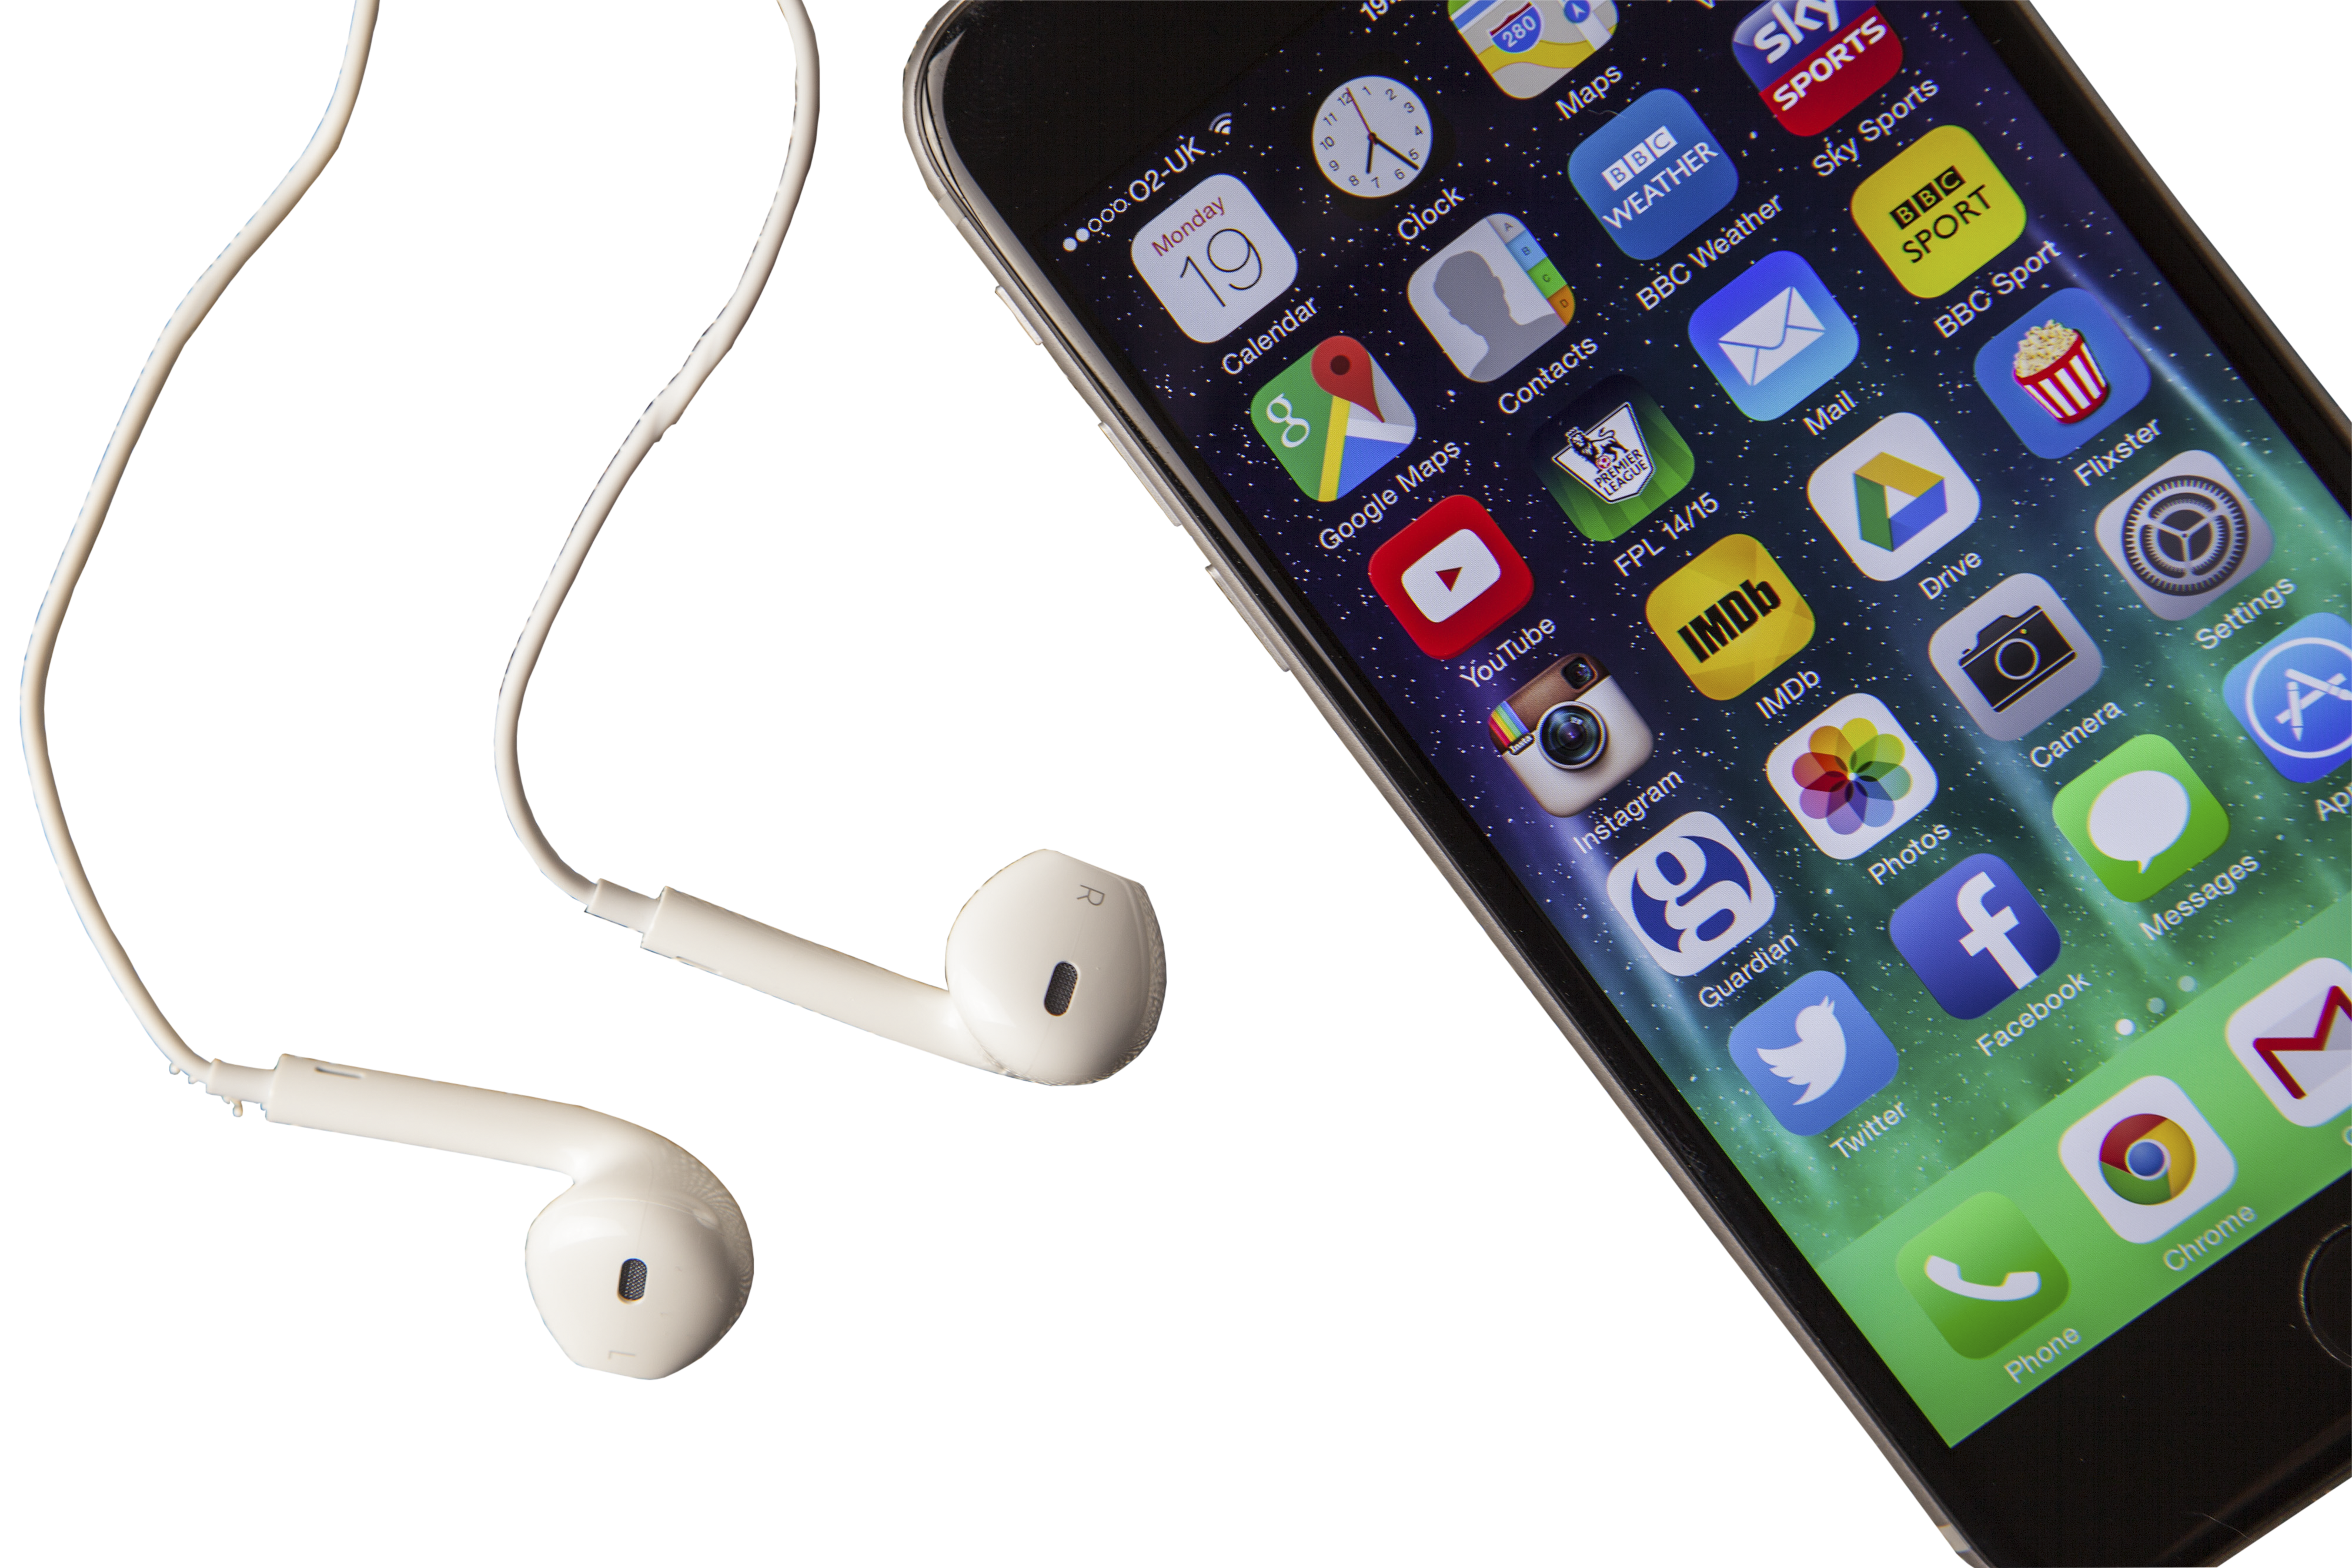 Headset Apple To Material Phone Plus Iphone PNG Image